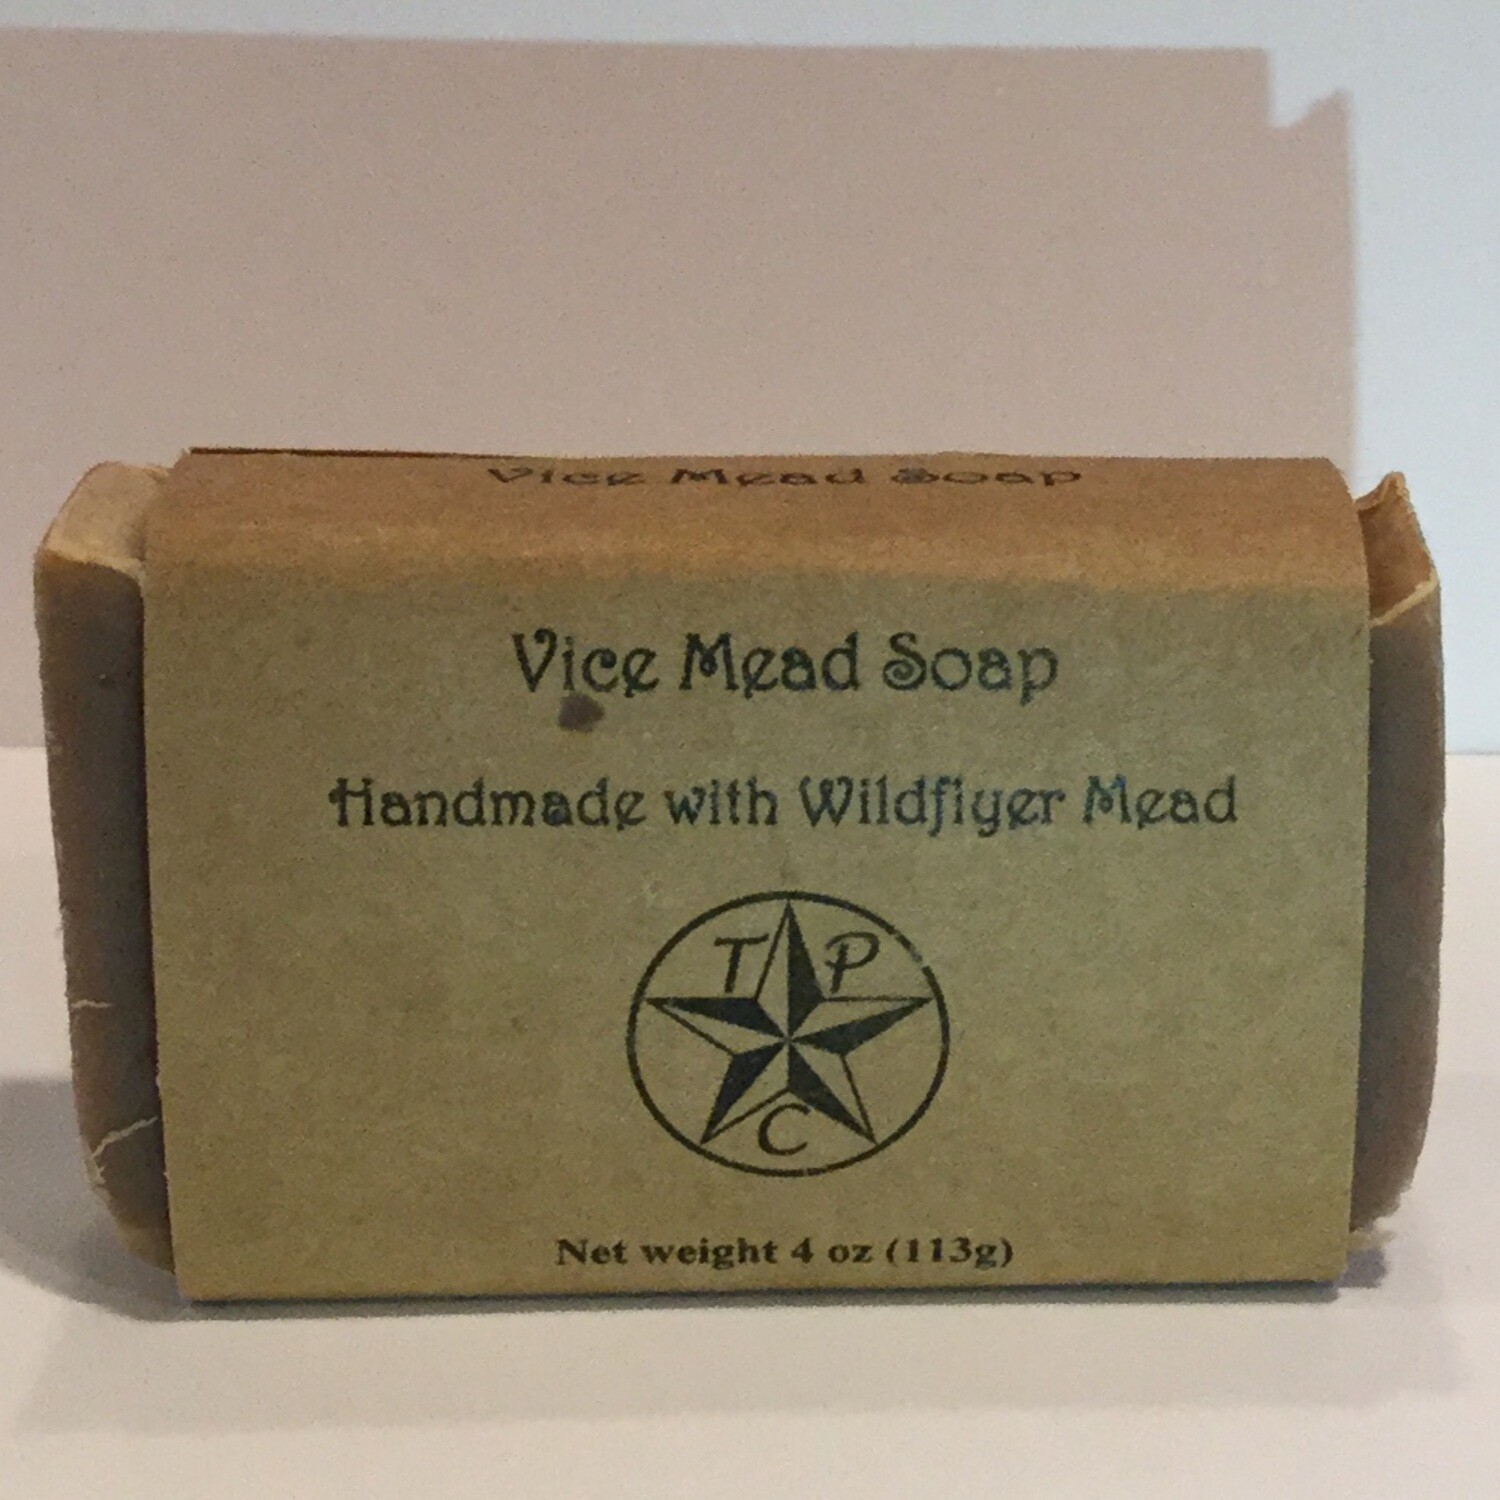 Vice Mead Soap